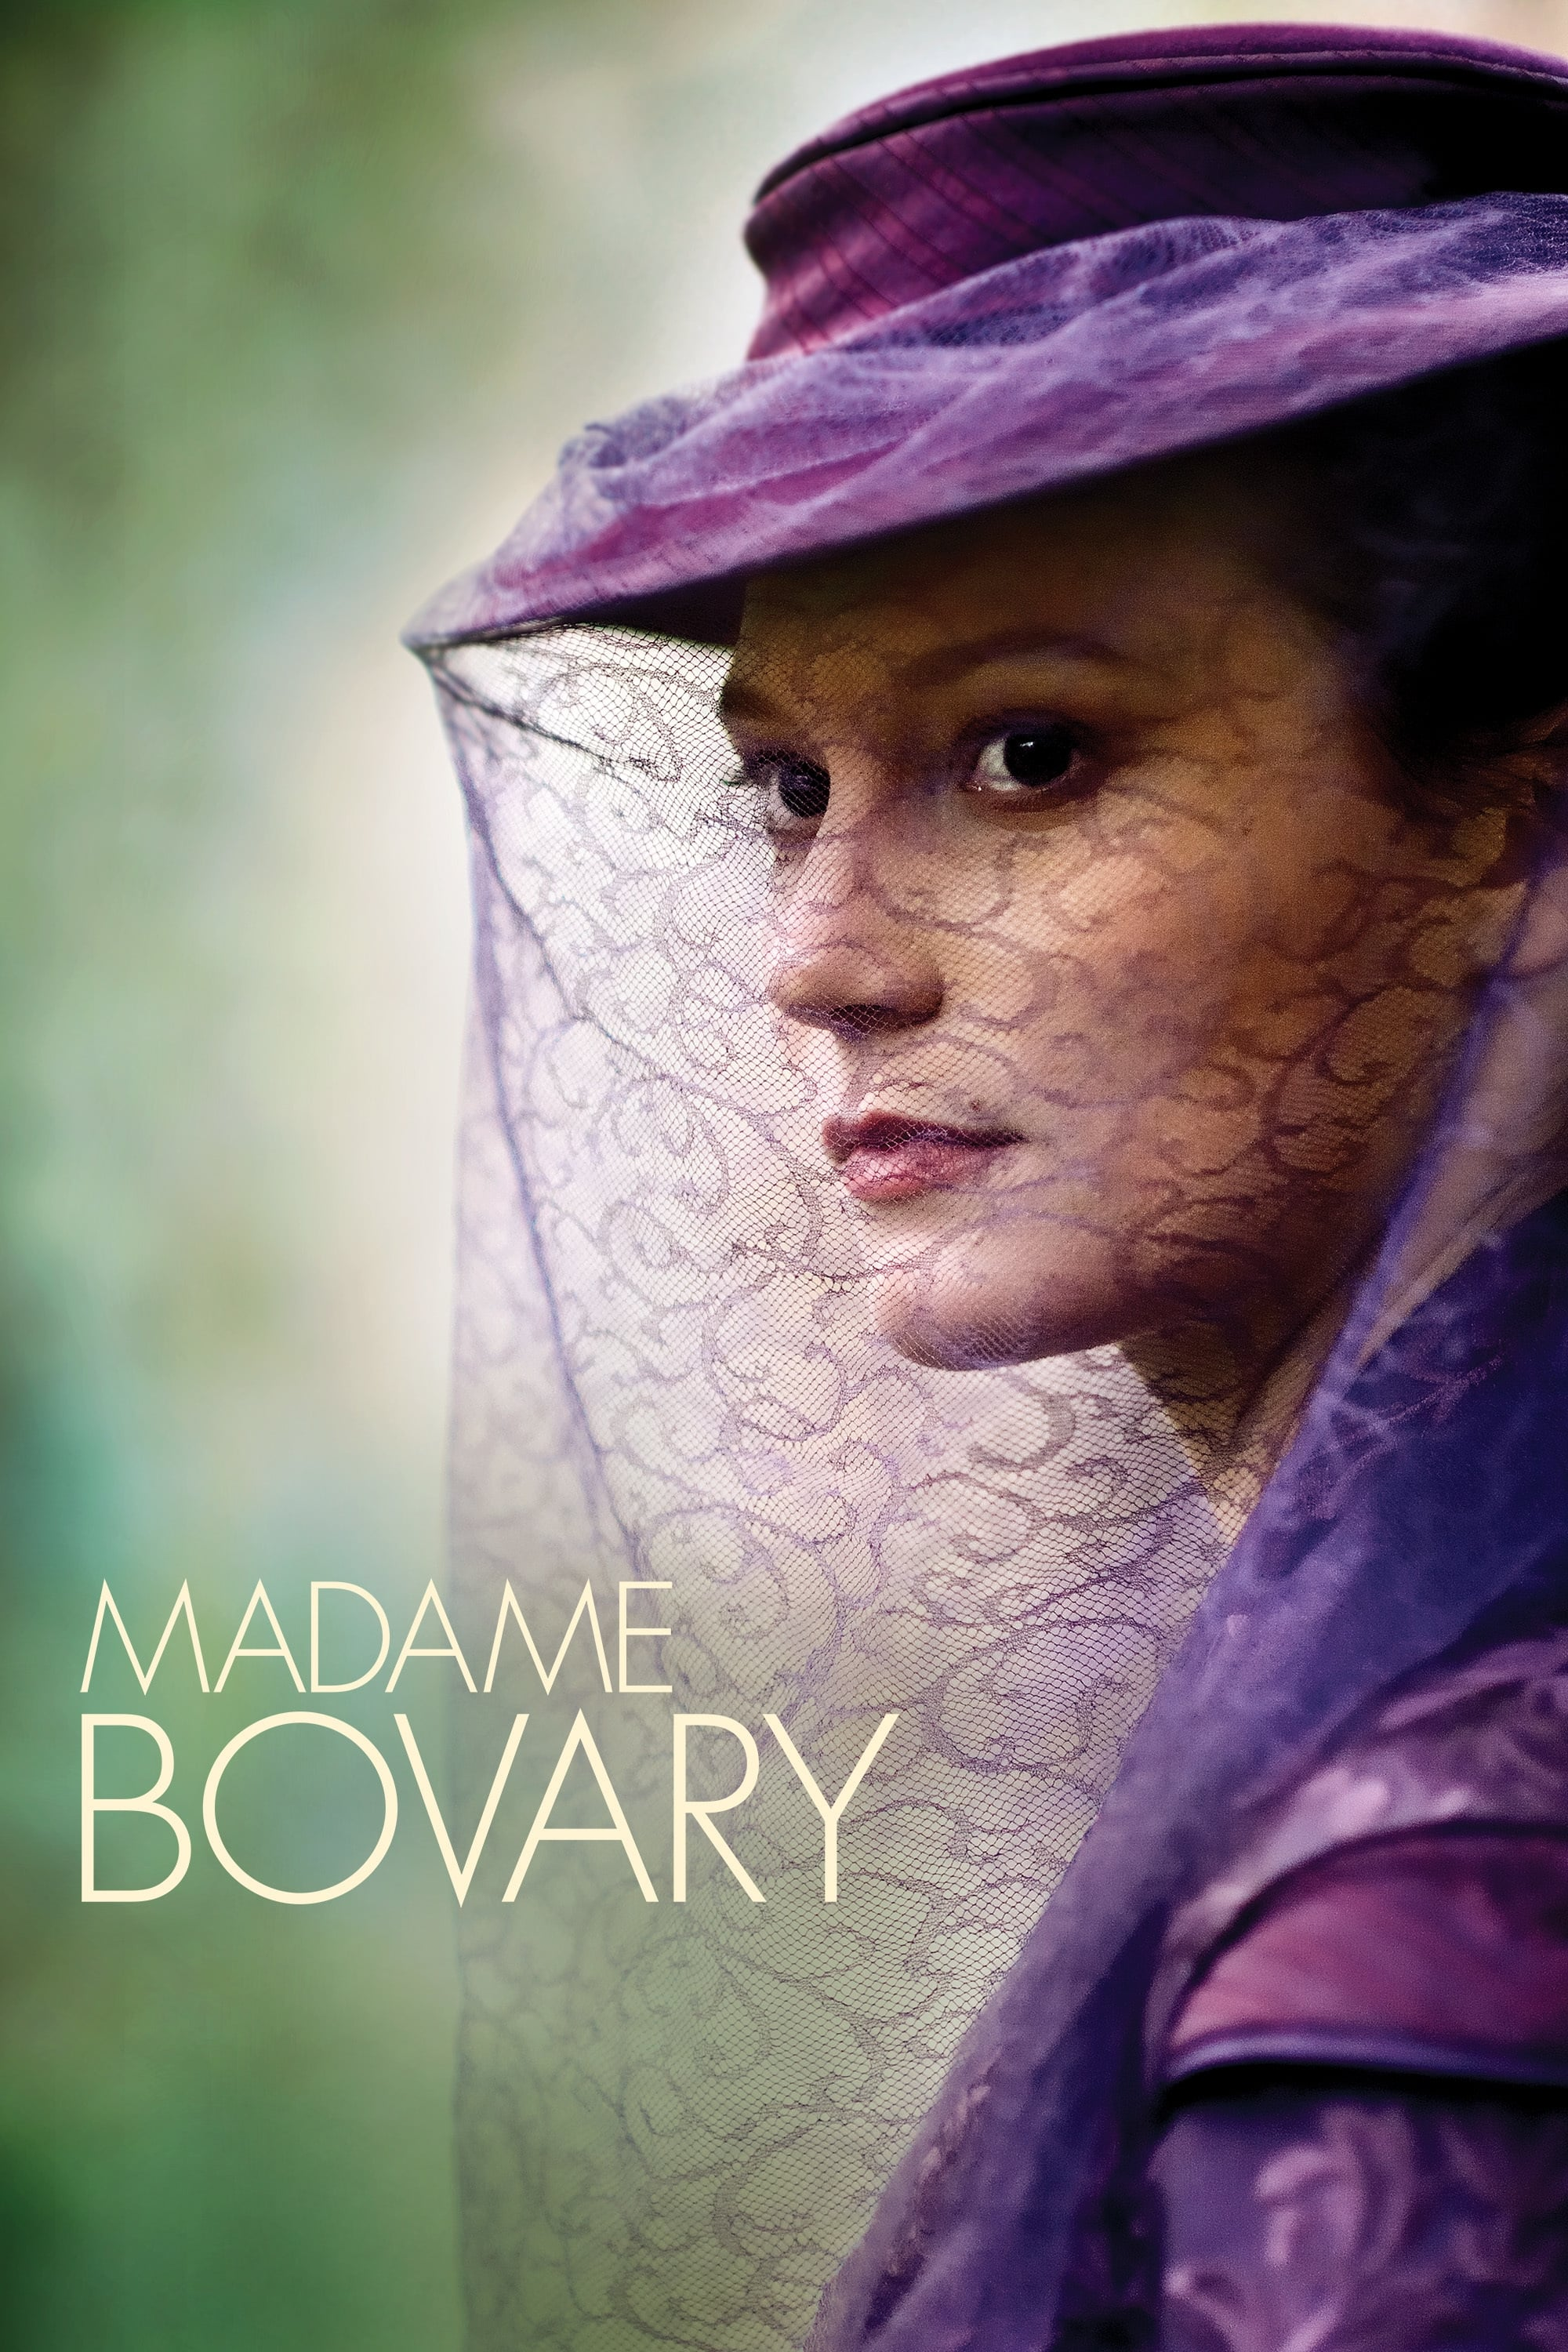 madame bovary homais Download this stock image: madame bovary homais - d88hjr from alamy's  library of millions of high resolution stock photos, illustrations and vectors.